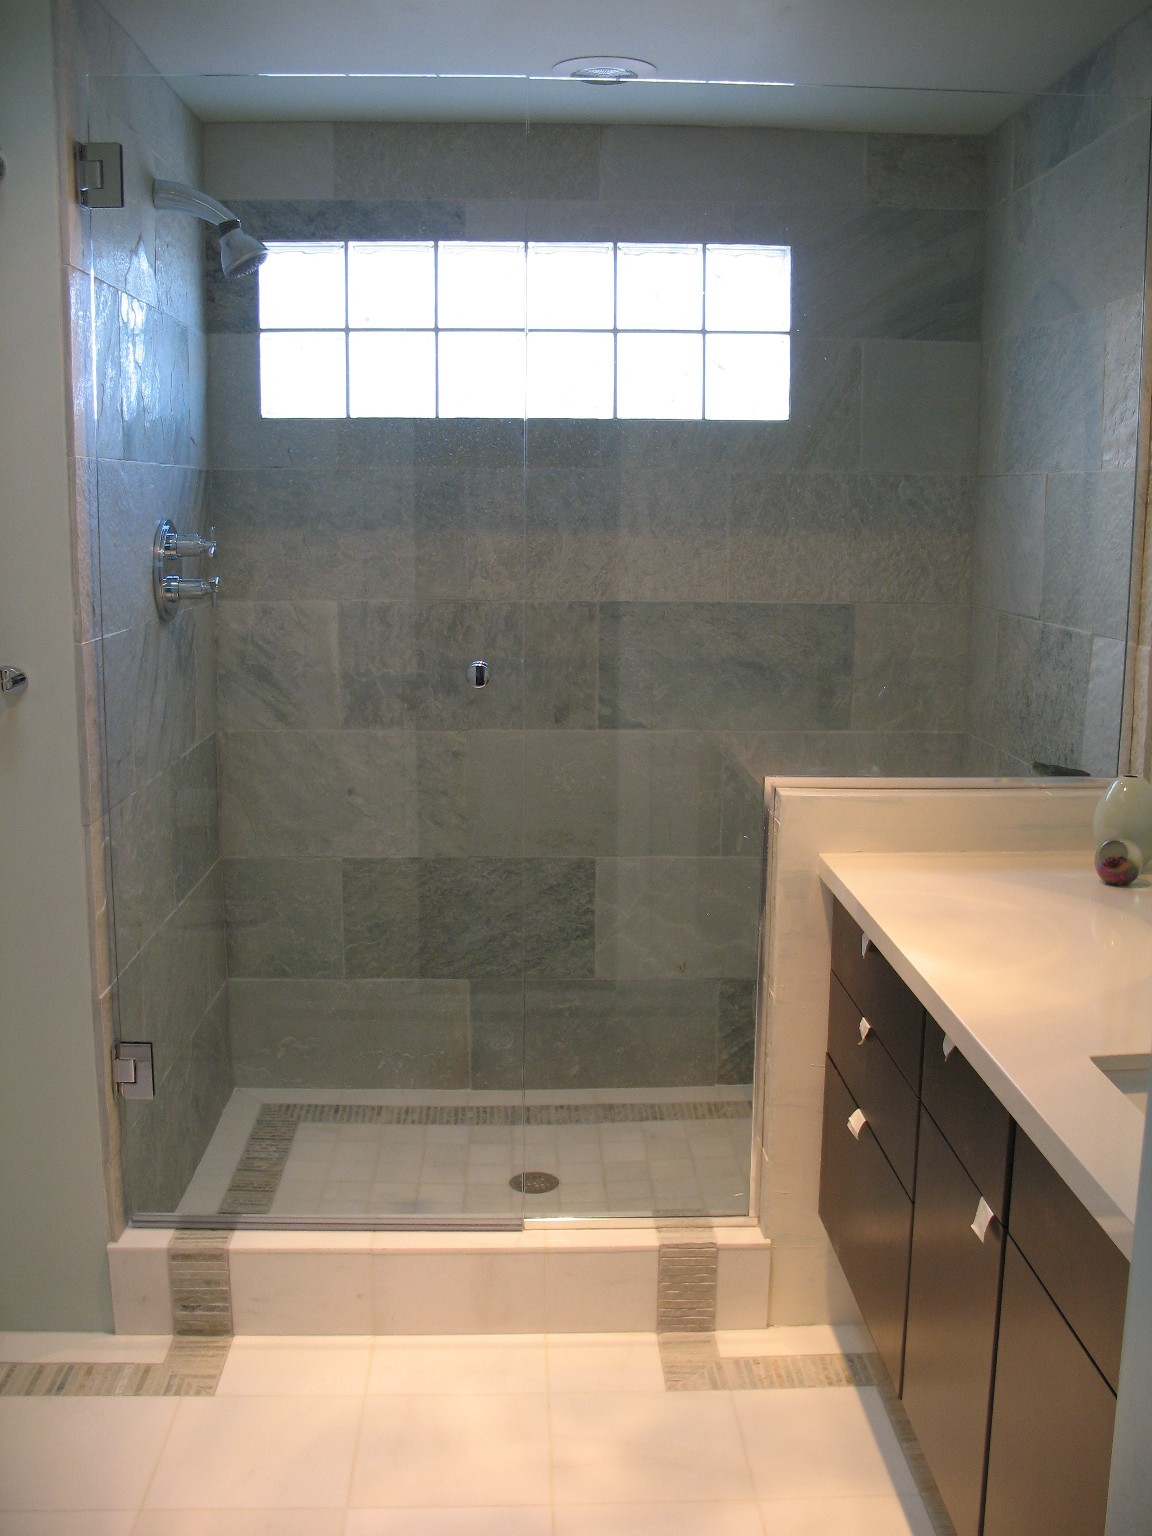 30 shower tile ideas on a budget Bathroom tile decorating ideas